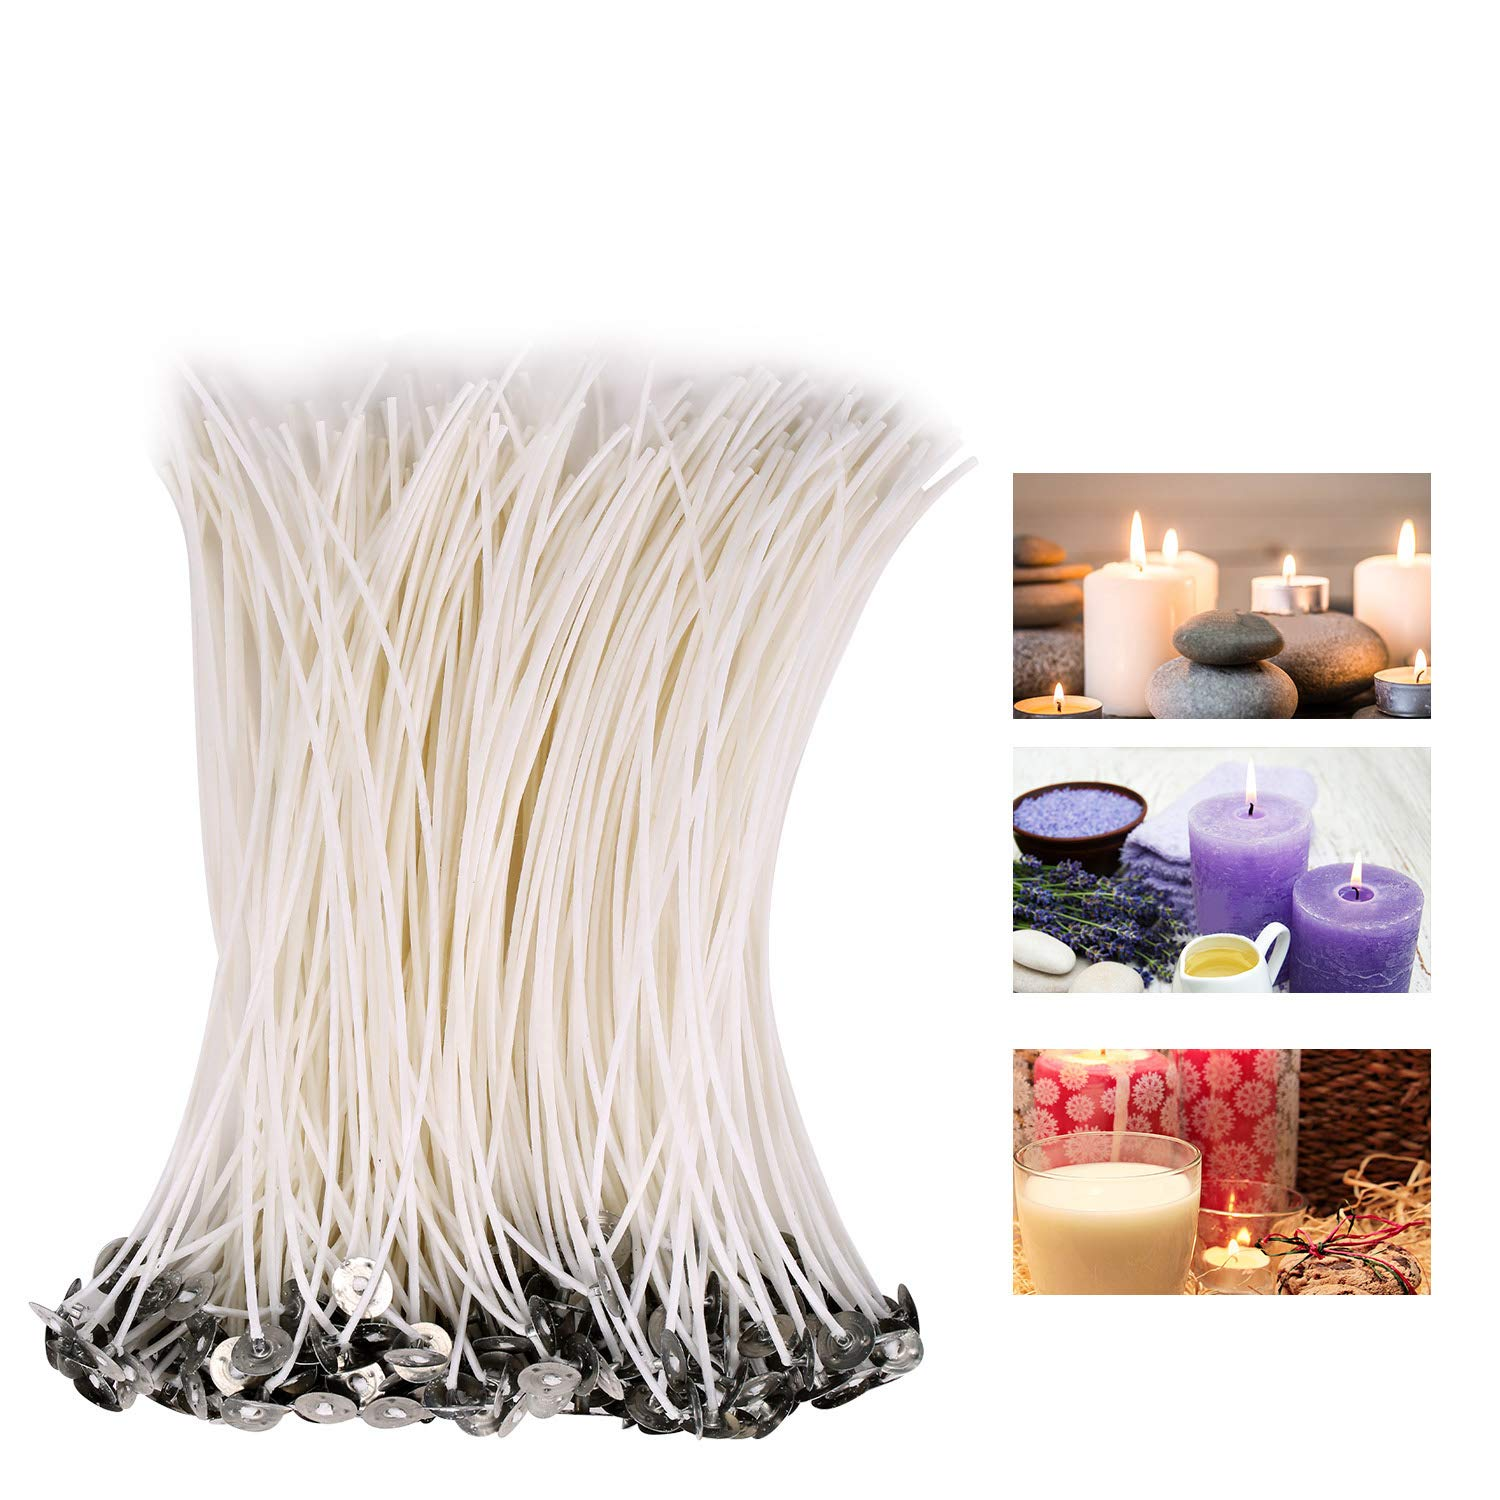 CLEYCYE Candle Wicks, 200piece Low Smoke 8inch Candle Wick - Pre-Waxed Natural Candle Wicks for DIY Candle Making